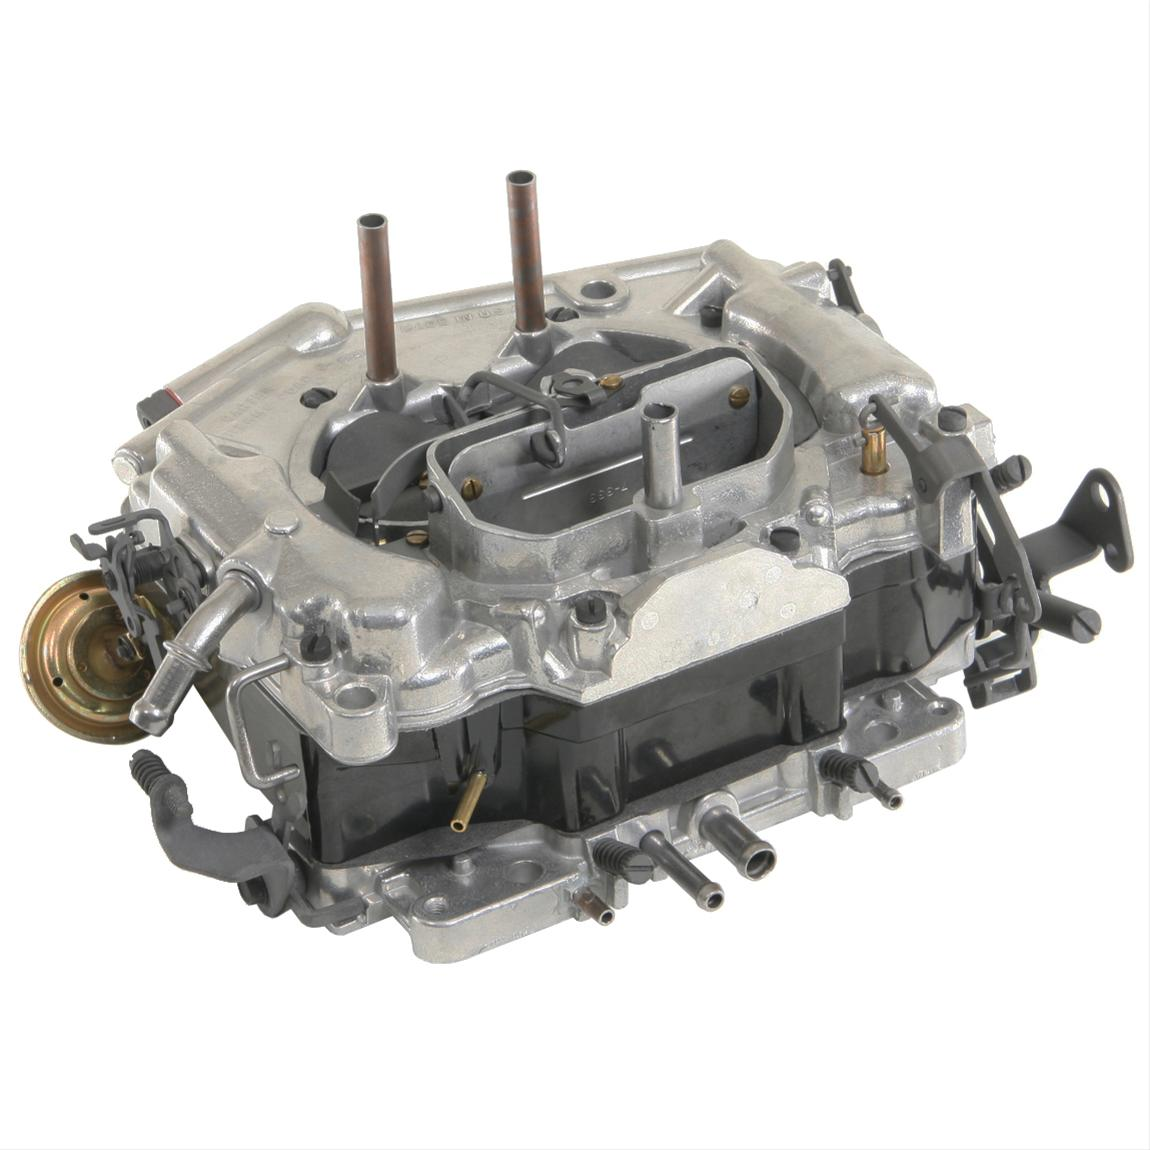 Find Summit Racing Carburetors and get Free Shipping on Orders Over $99 at Summit Racing!